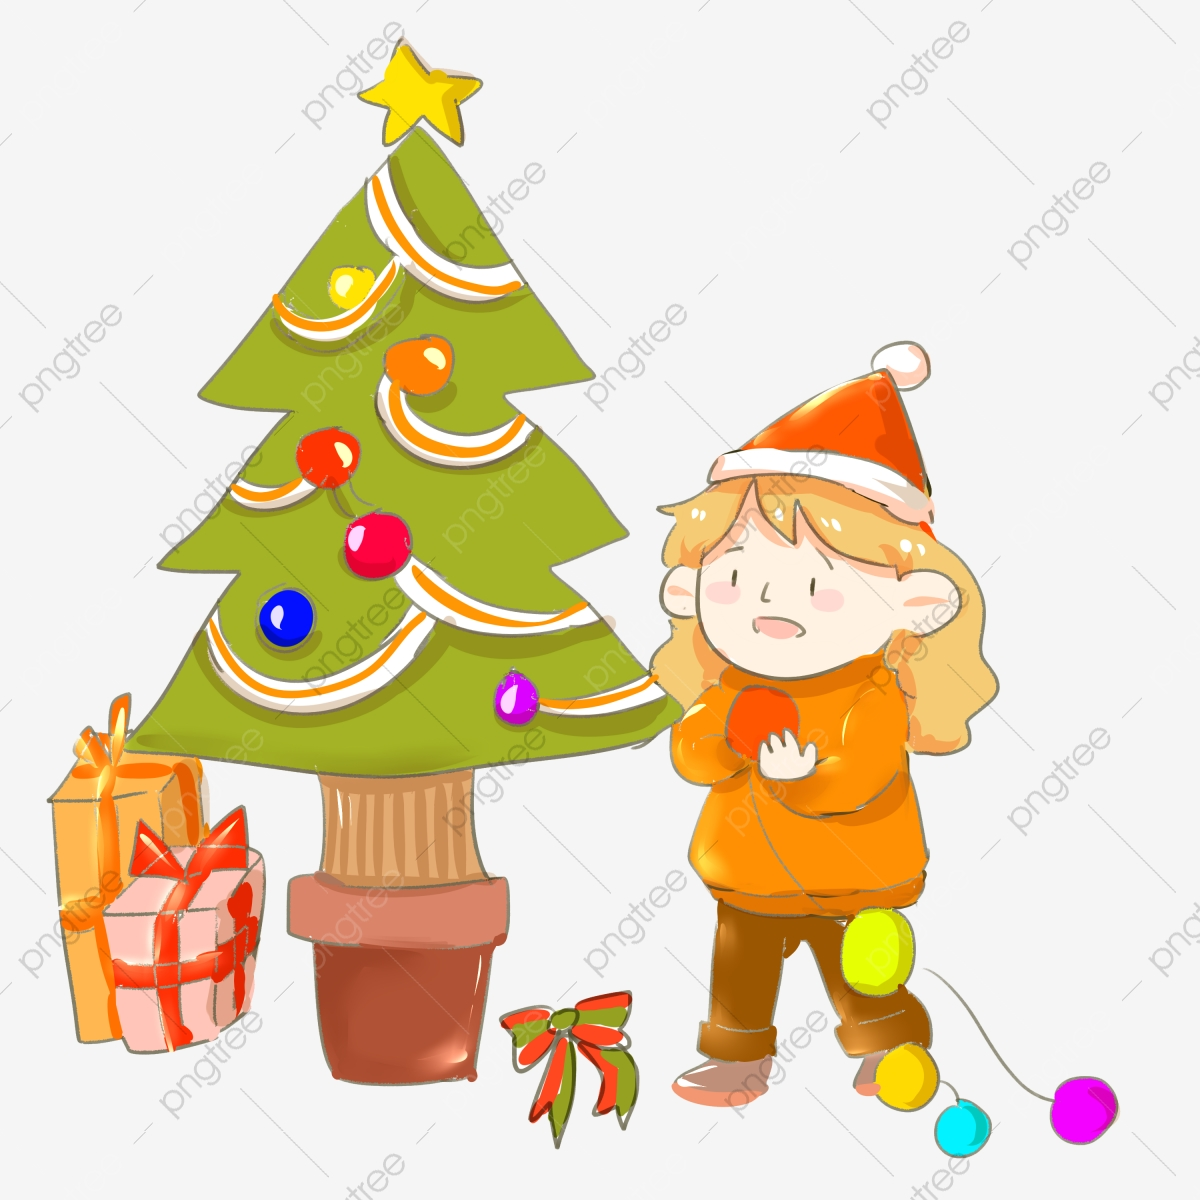 Green Christmas Tree Red Balloon Red Bow Pink Gift Box Cartoon Illustration Hand Drawn Christmas Illustration Green Christmas Tree Png Transparent Clipart Image And Psd File For Free Download